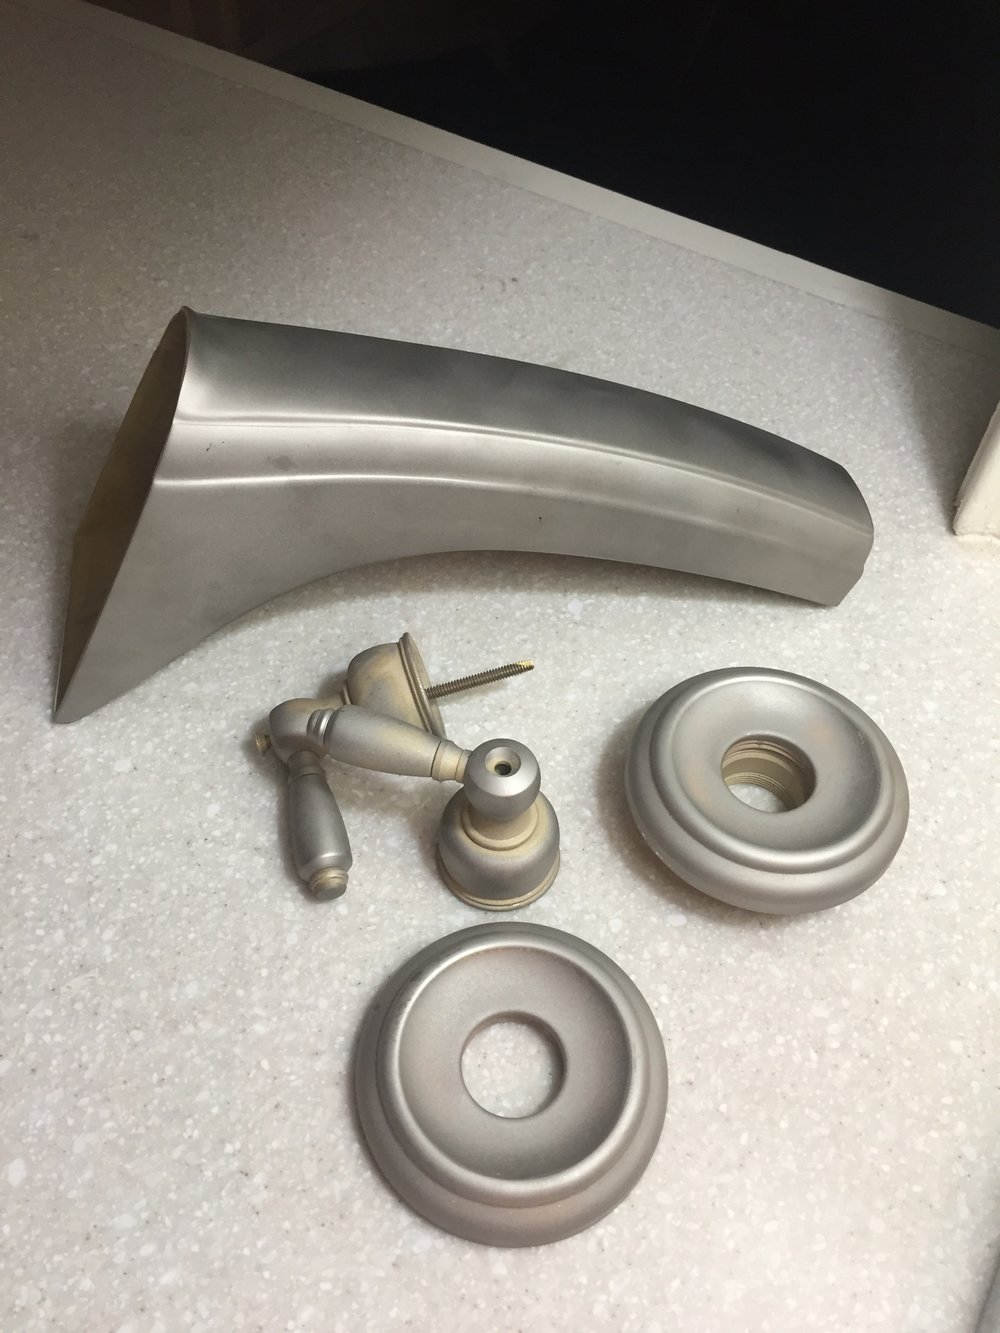 Guyette tub faucet 2nd phase.jpg